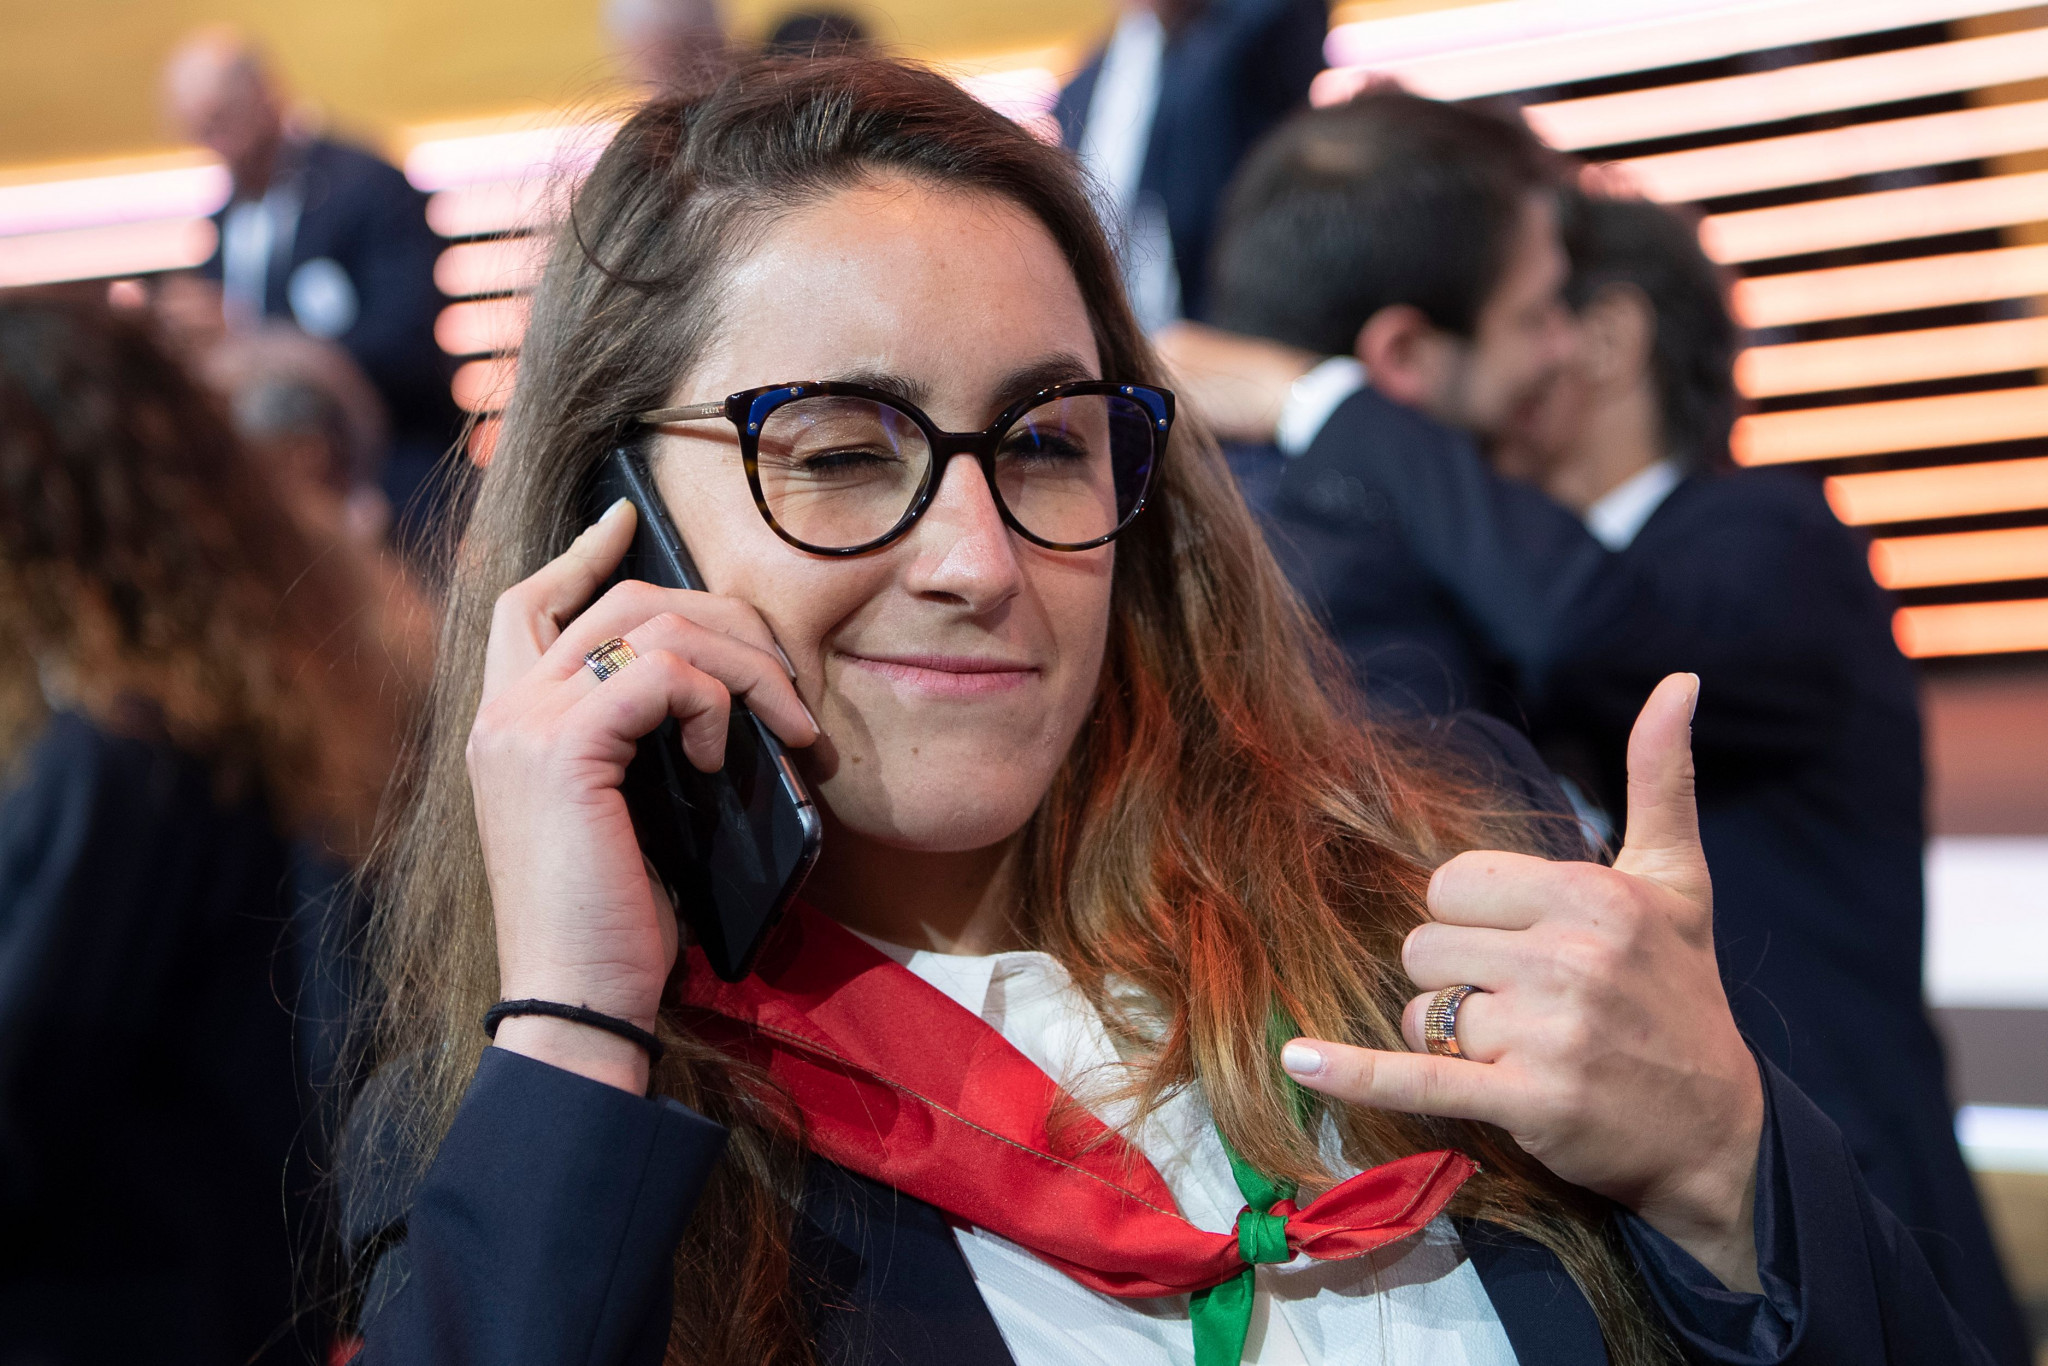 Sofia Goggia, who supported Milan Cortina's bid for the 2026 Winter Olympics, will contribute to the app ©Getty Images